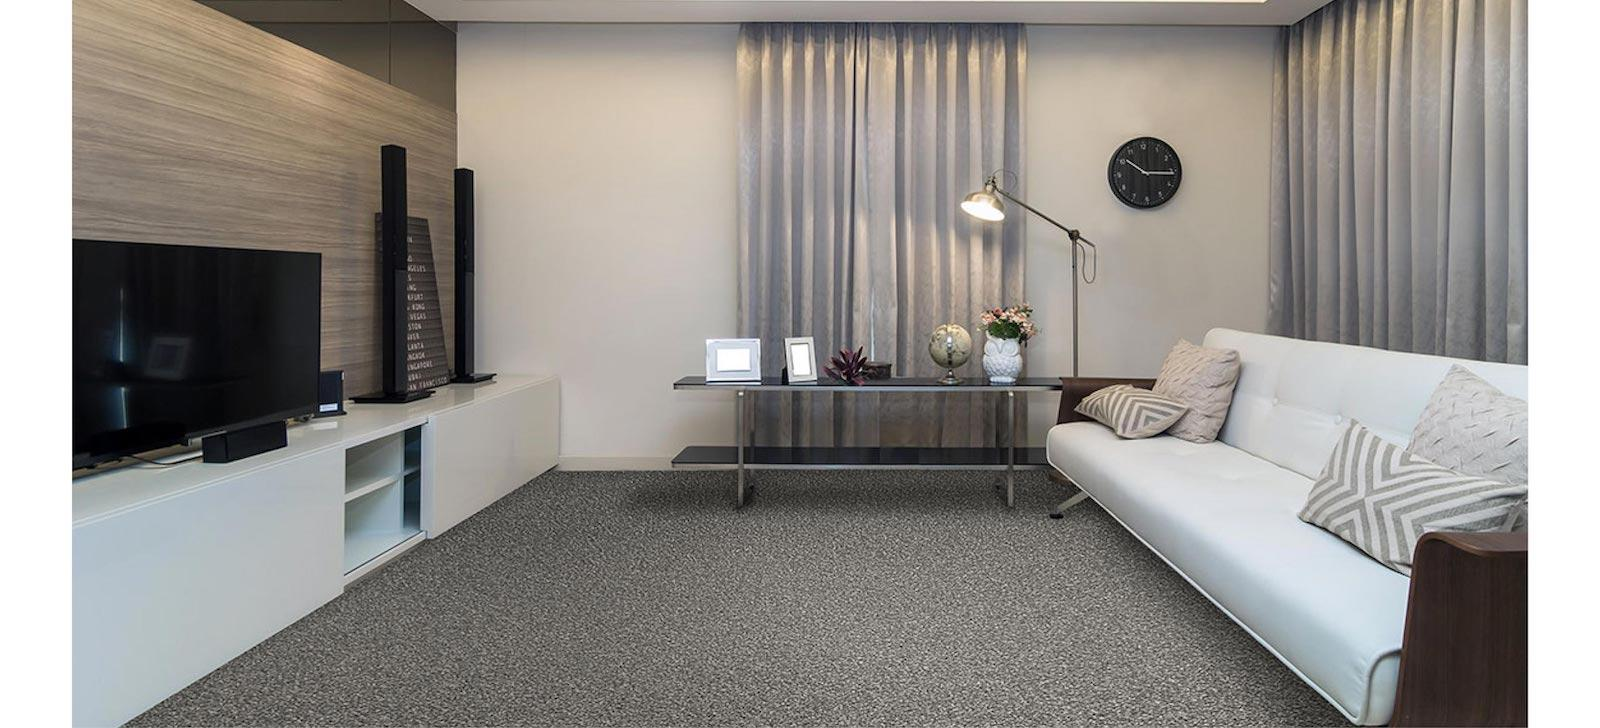 Cosy lounge room set with grey carpet